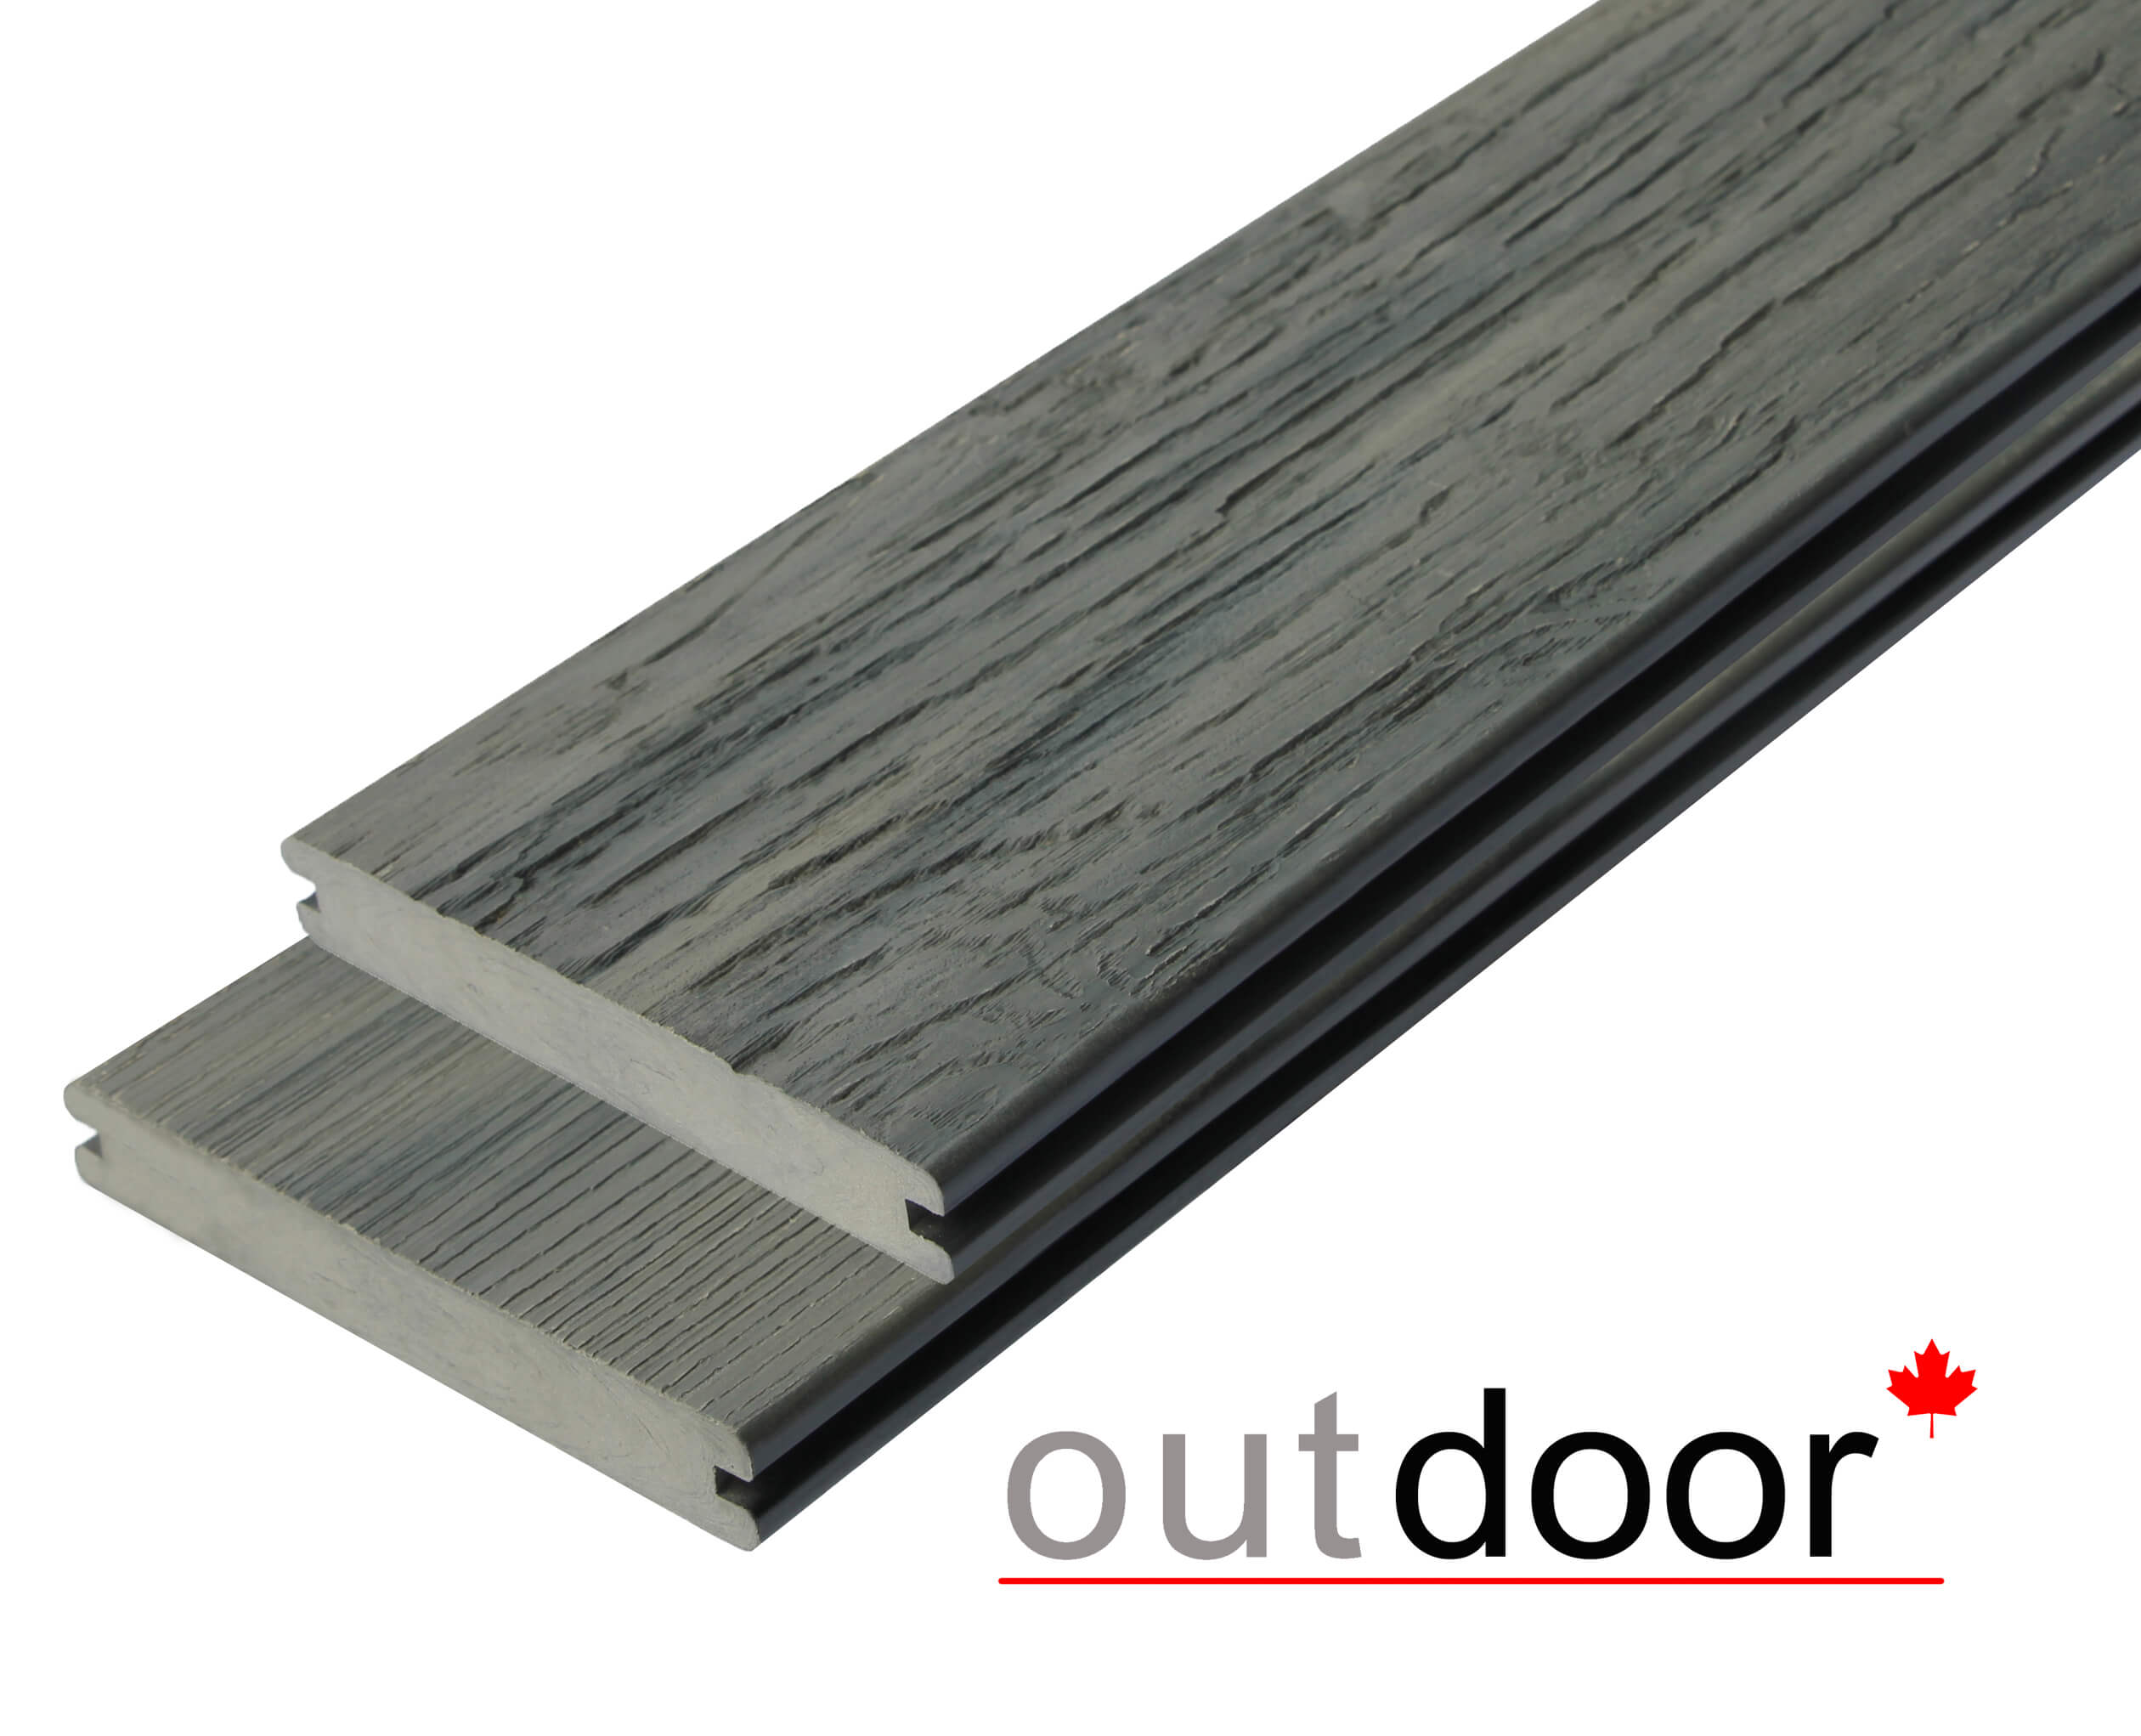 Outdoor 3D STORM OLD WOOD GREY